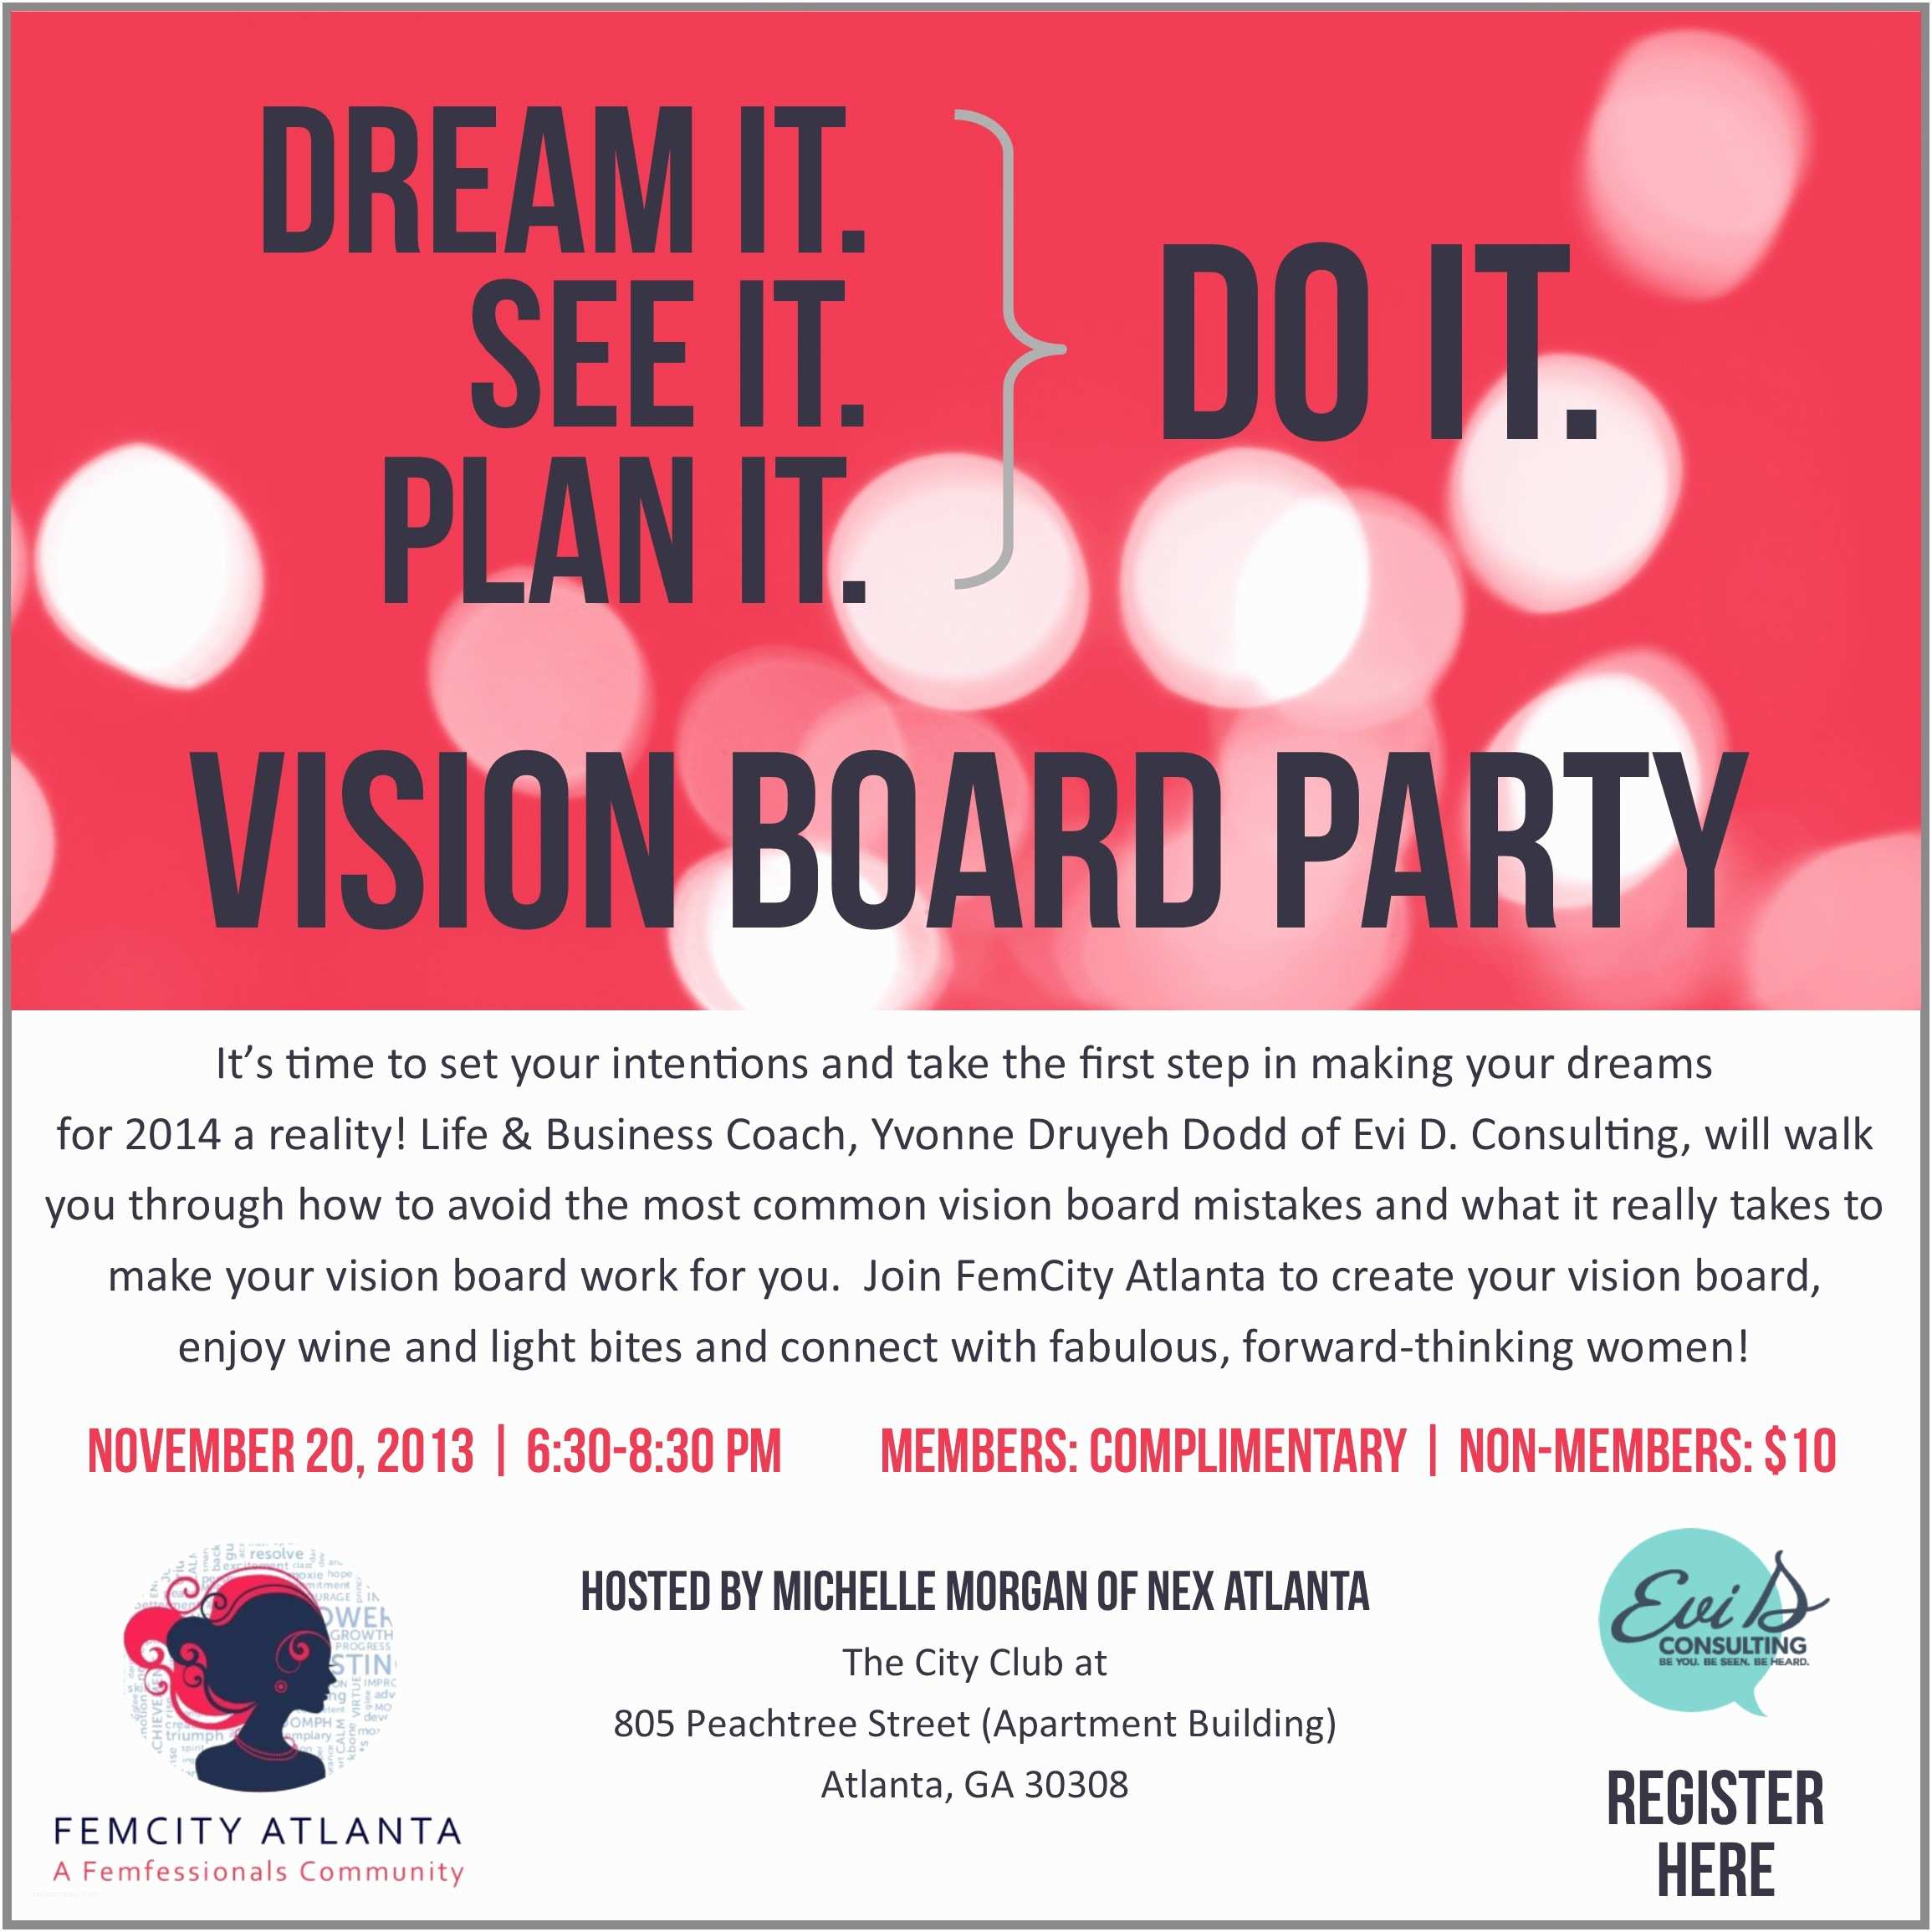 Vision Board Party Invitation Dream It Do It Vision Board Party Tickets Wed Nov 20